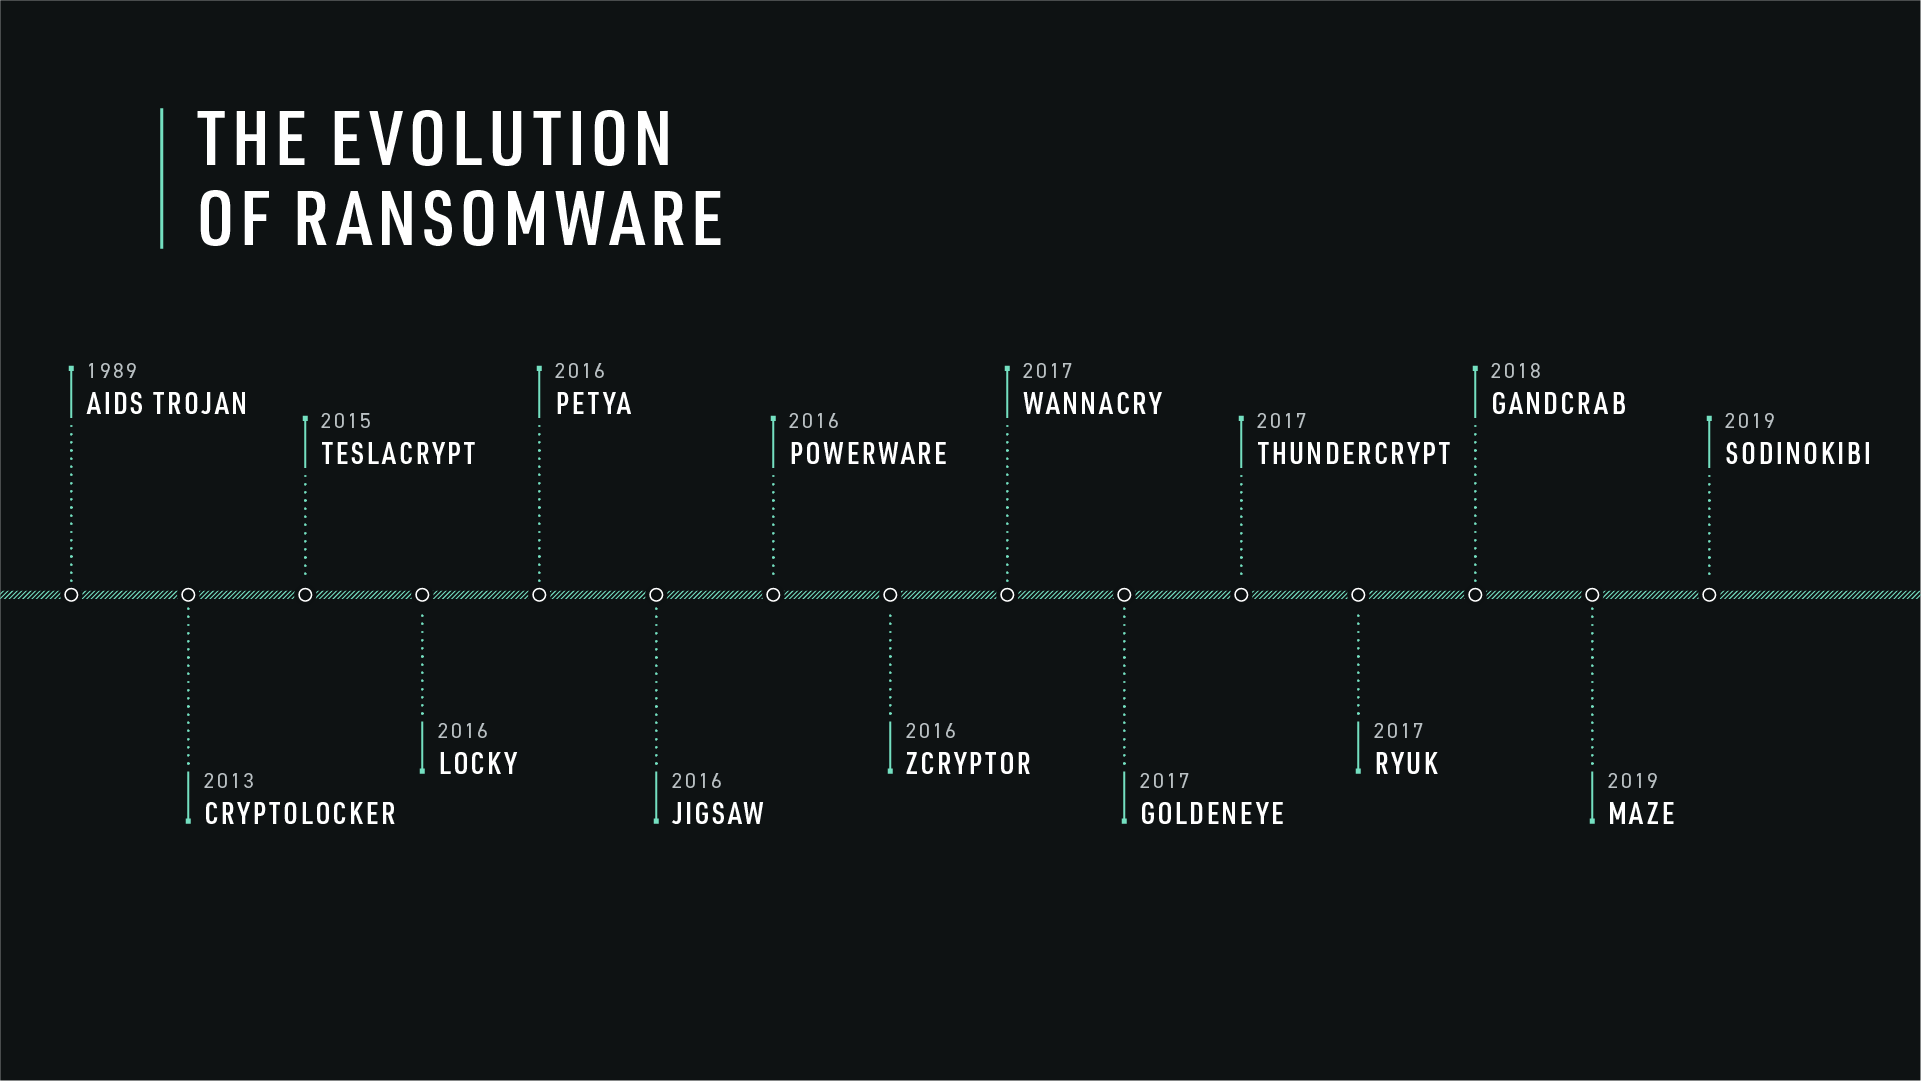 The_Evolution_of_Ransomware_Timeline